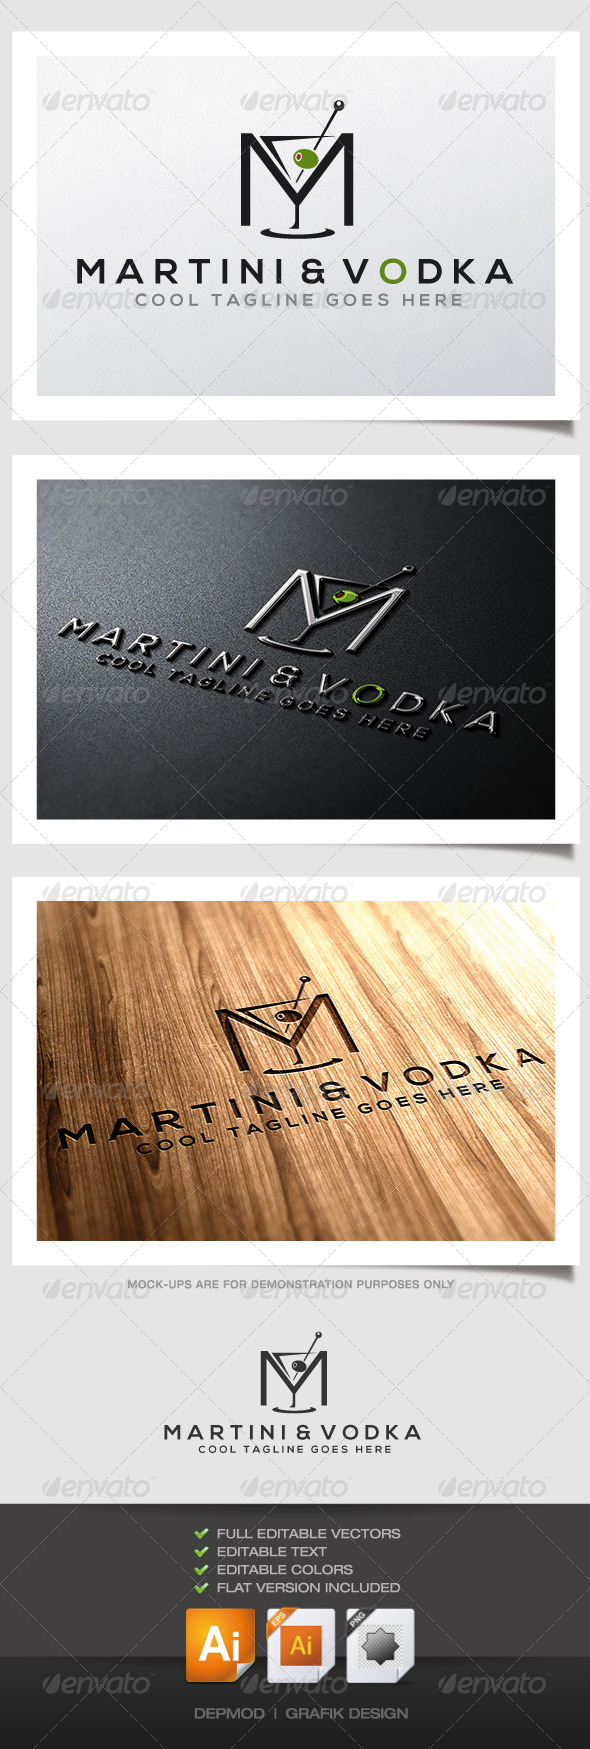 GraphicRiver Martini & Vodka Logo 4577682